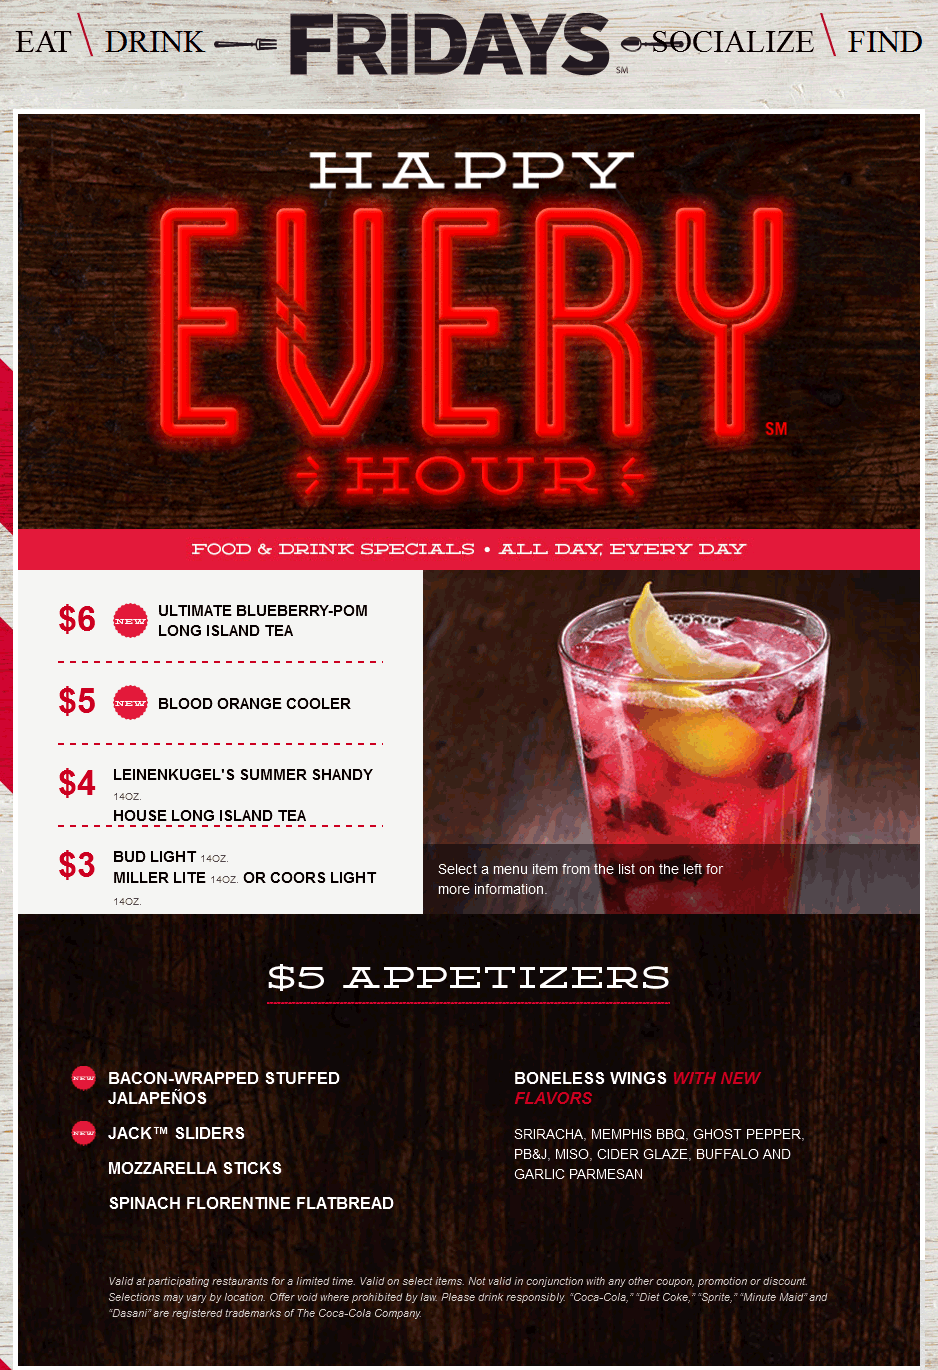 TGI Fridays Coupon May 2017 $5 appetizers & drink deals going on at TGI Fridays